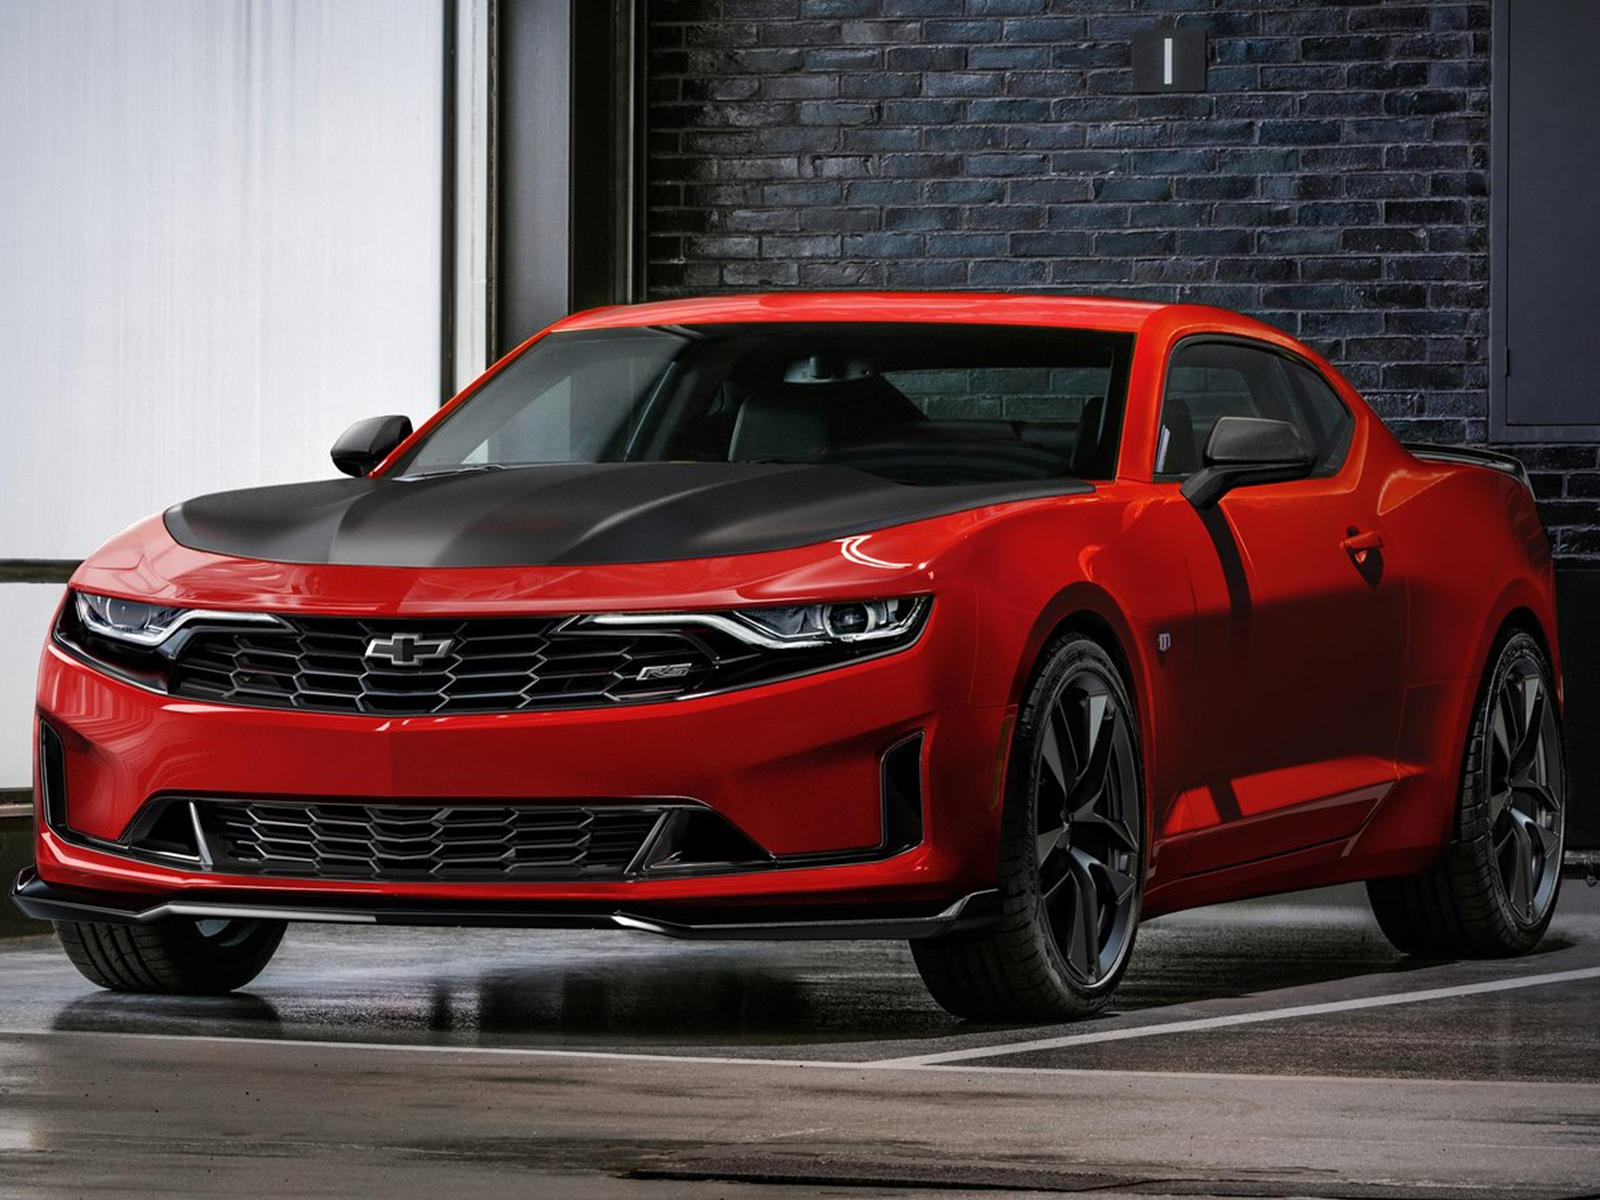 6Th Generation Camaro >> Chevrolet To Discontinue The Camaro After 2023 Carbuzz